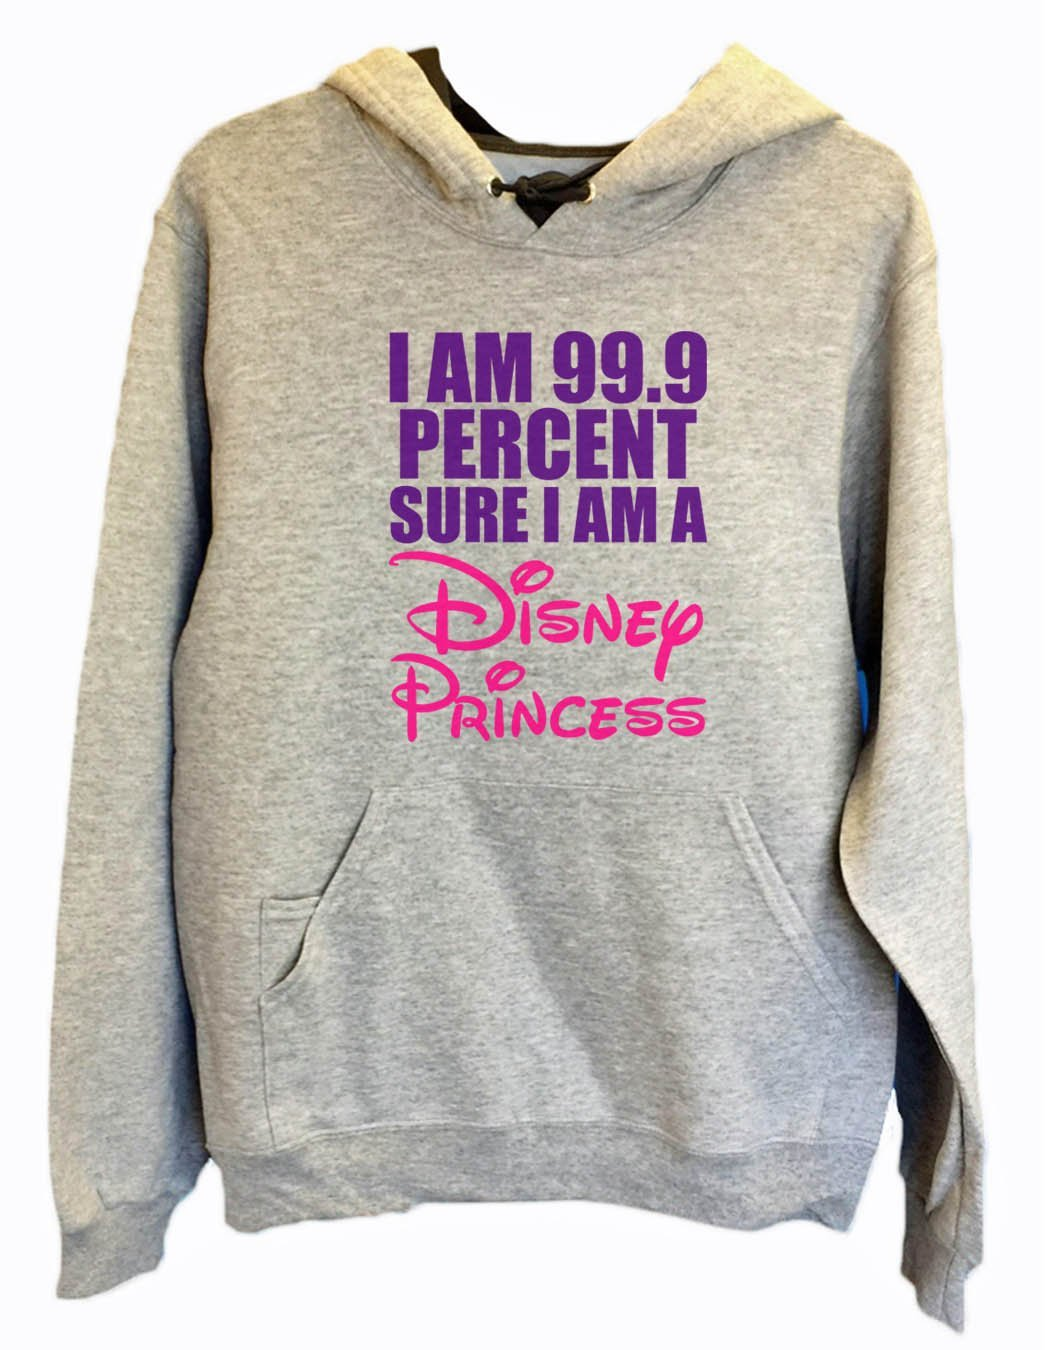 UNISEX HOODIE - I am 99.9 percent sure I am a disney princess - FUNNY MENS AND WOMENS HOODED SWEATSHIRTS - 1631 Funny Shirt Small / Heather Grey